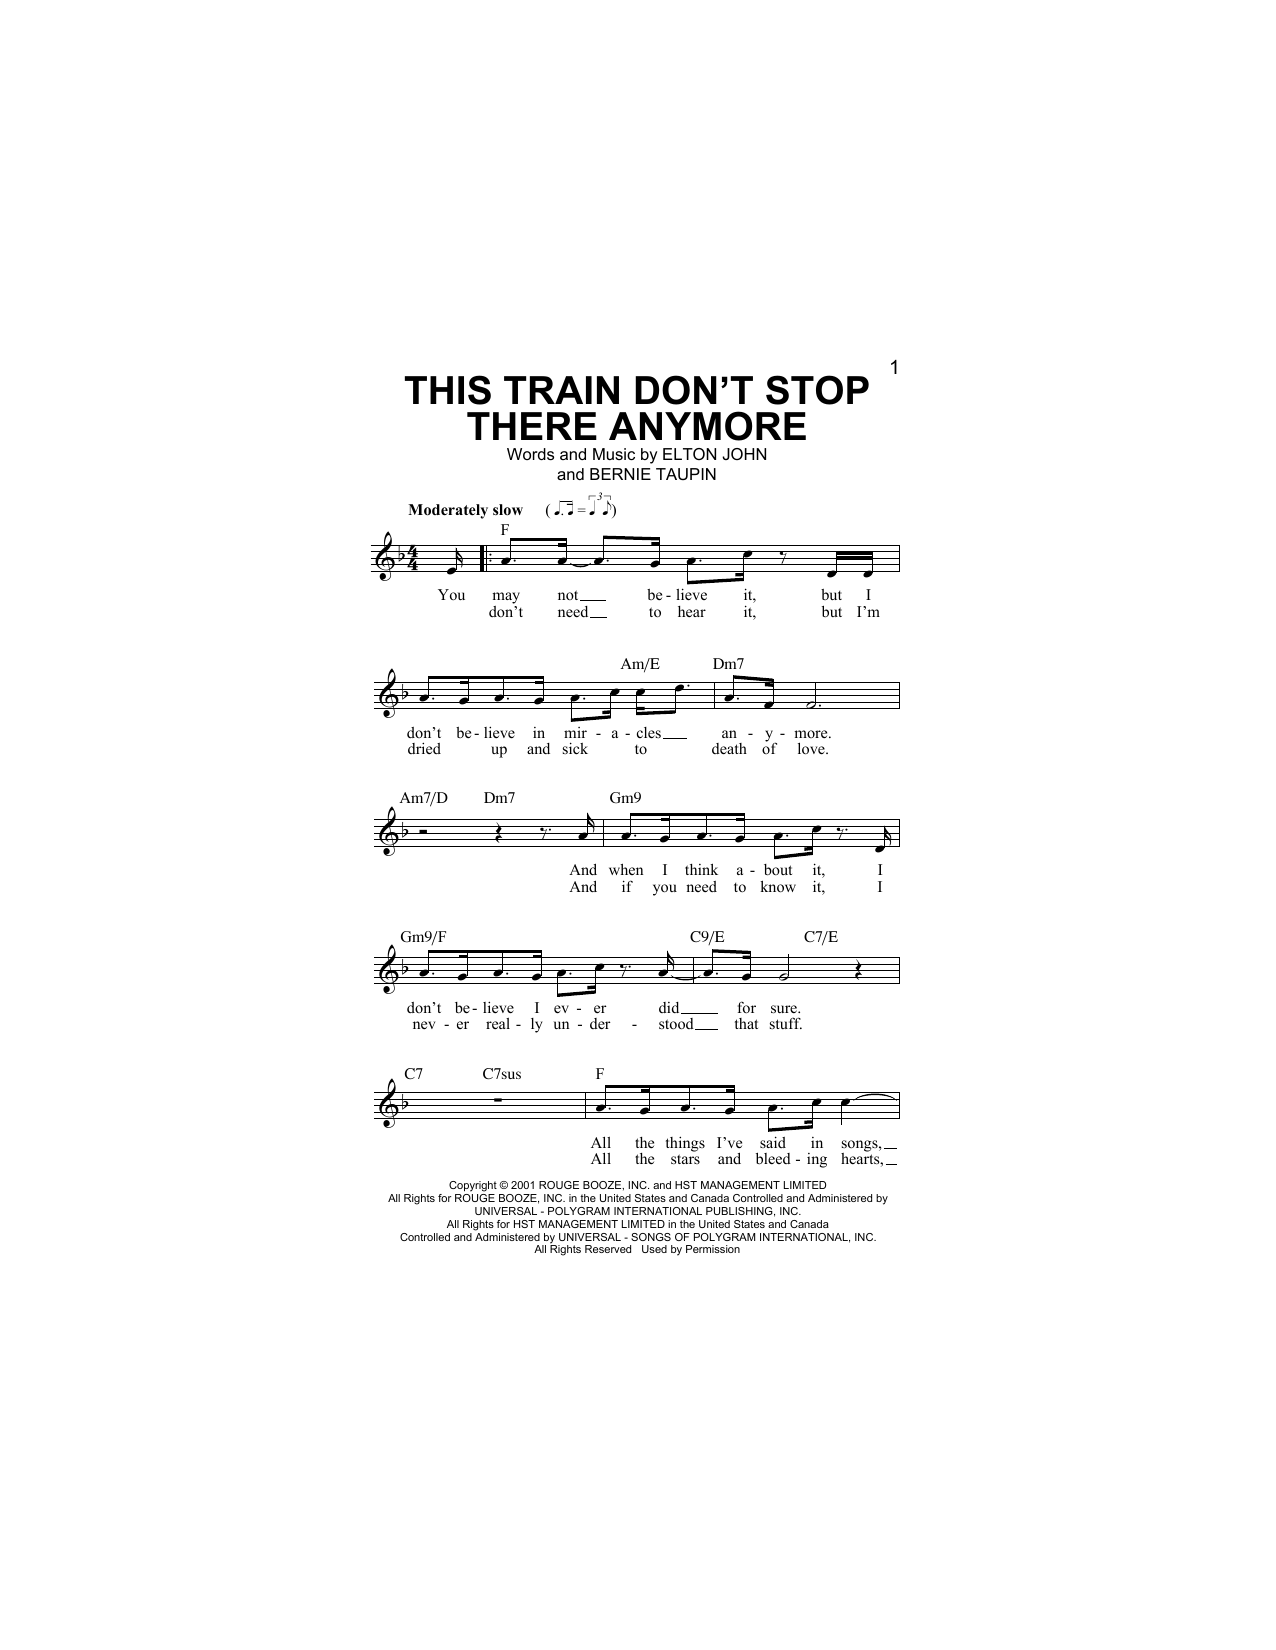 This Train Don't Stop There Anymore Sheet Music